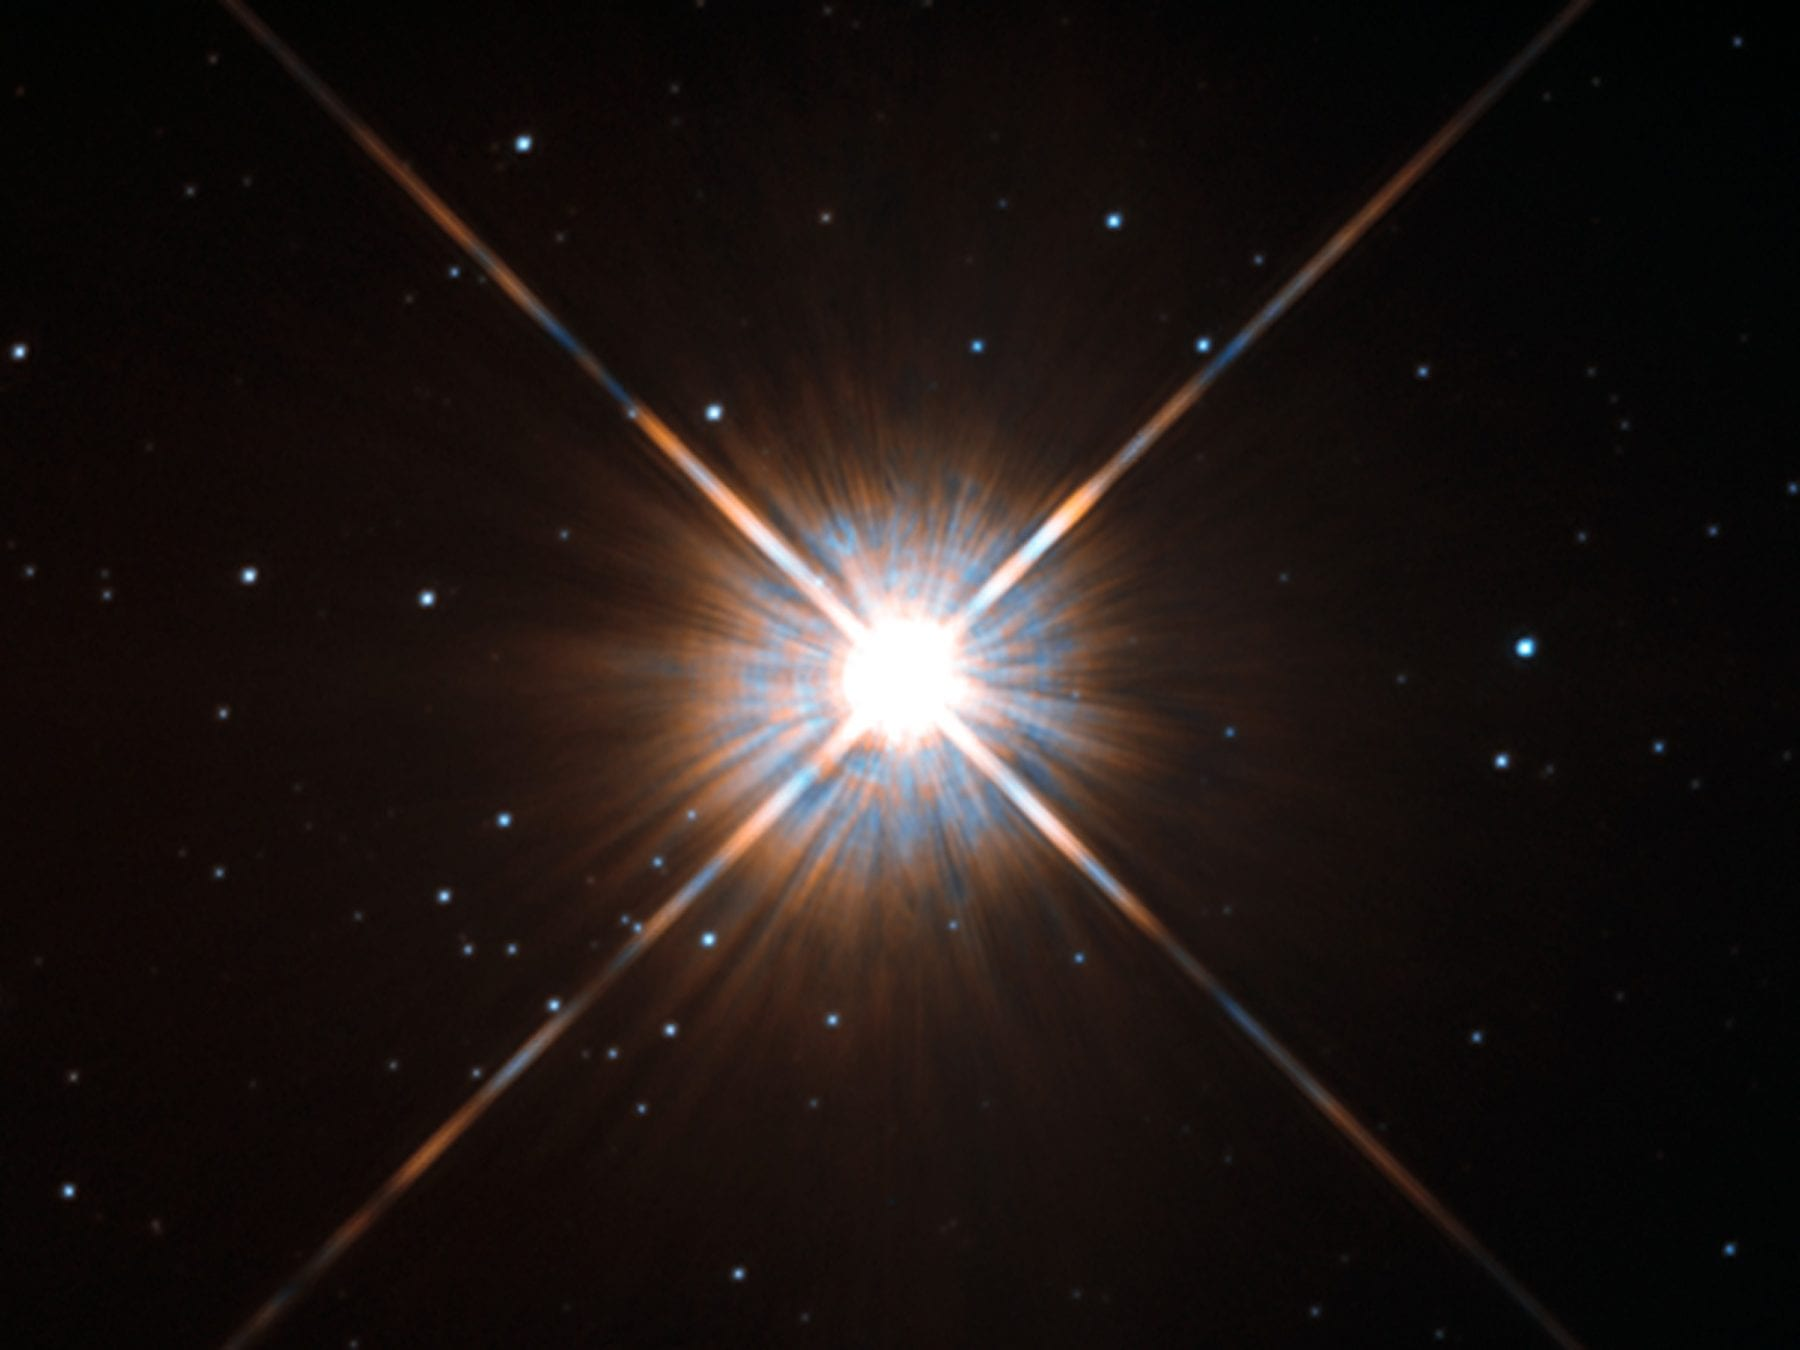 Scientists have discovered an Earth-like planet orbiting a star in our neighbourhood: Proxima Centauri